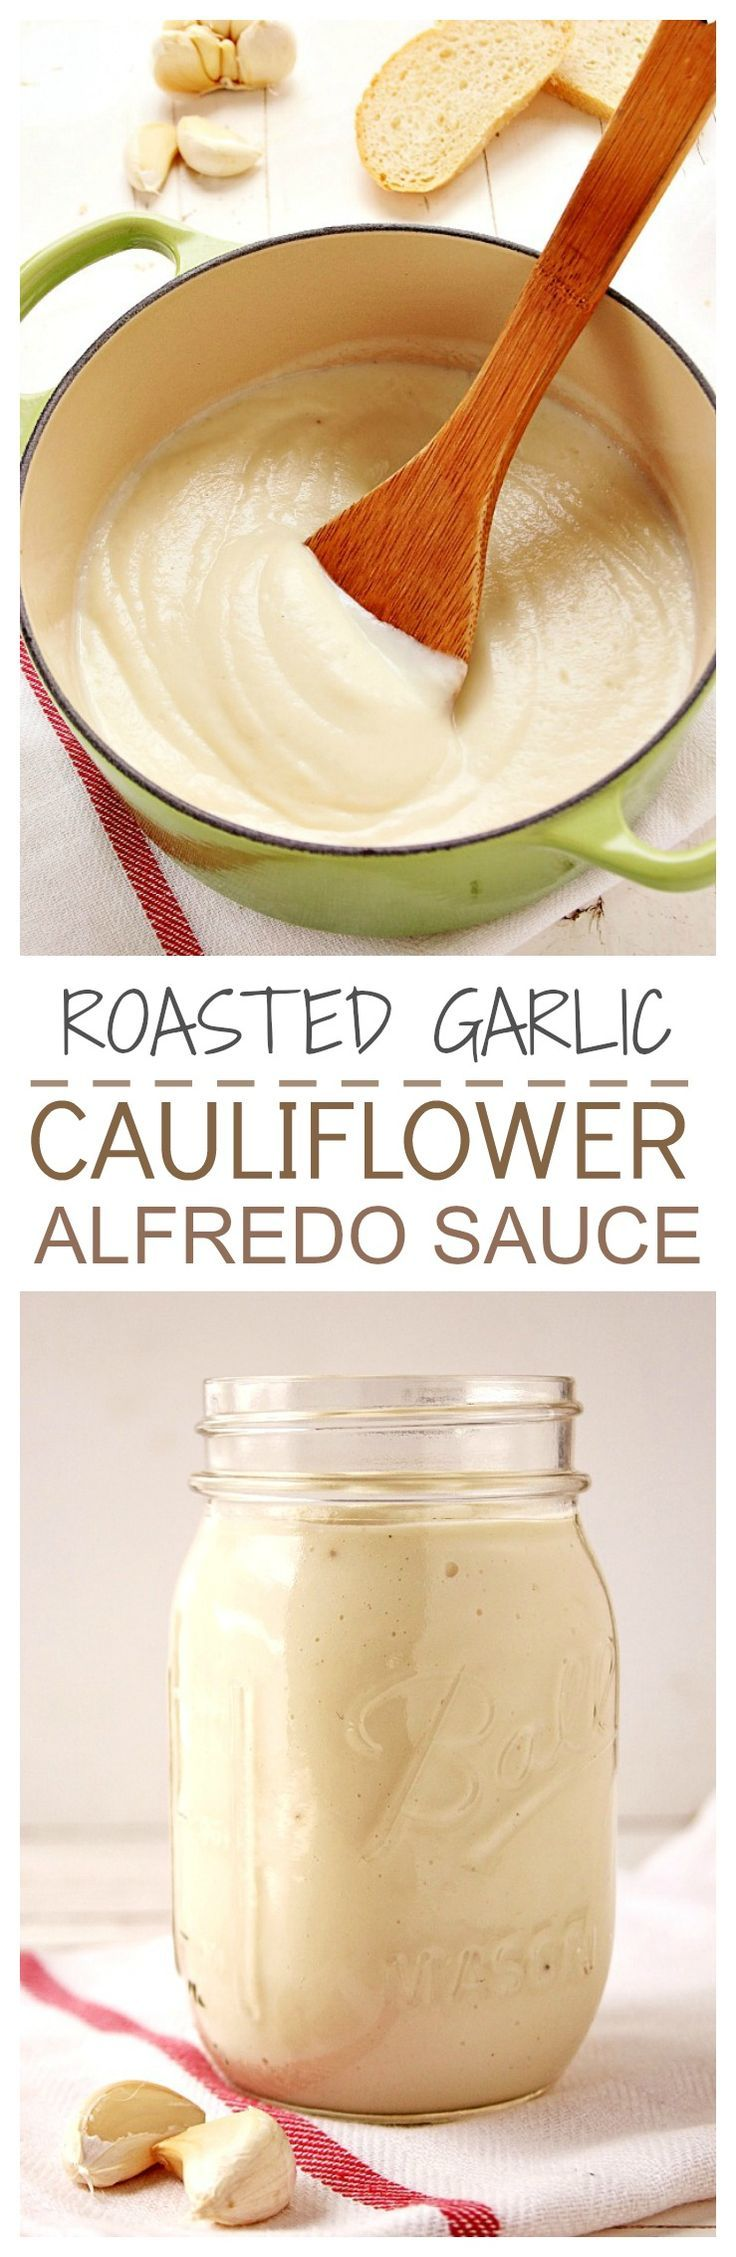 Healthy sauce made with cauliflower and roasted garlic ... Will try with nutritional yeast